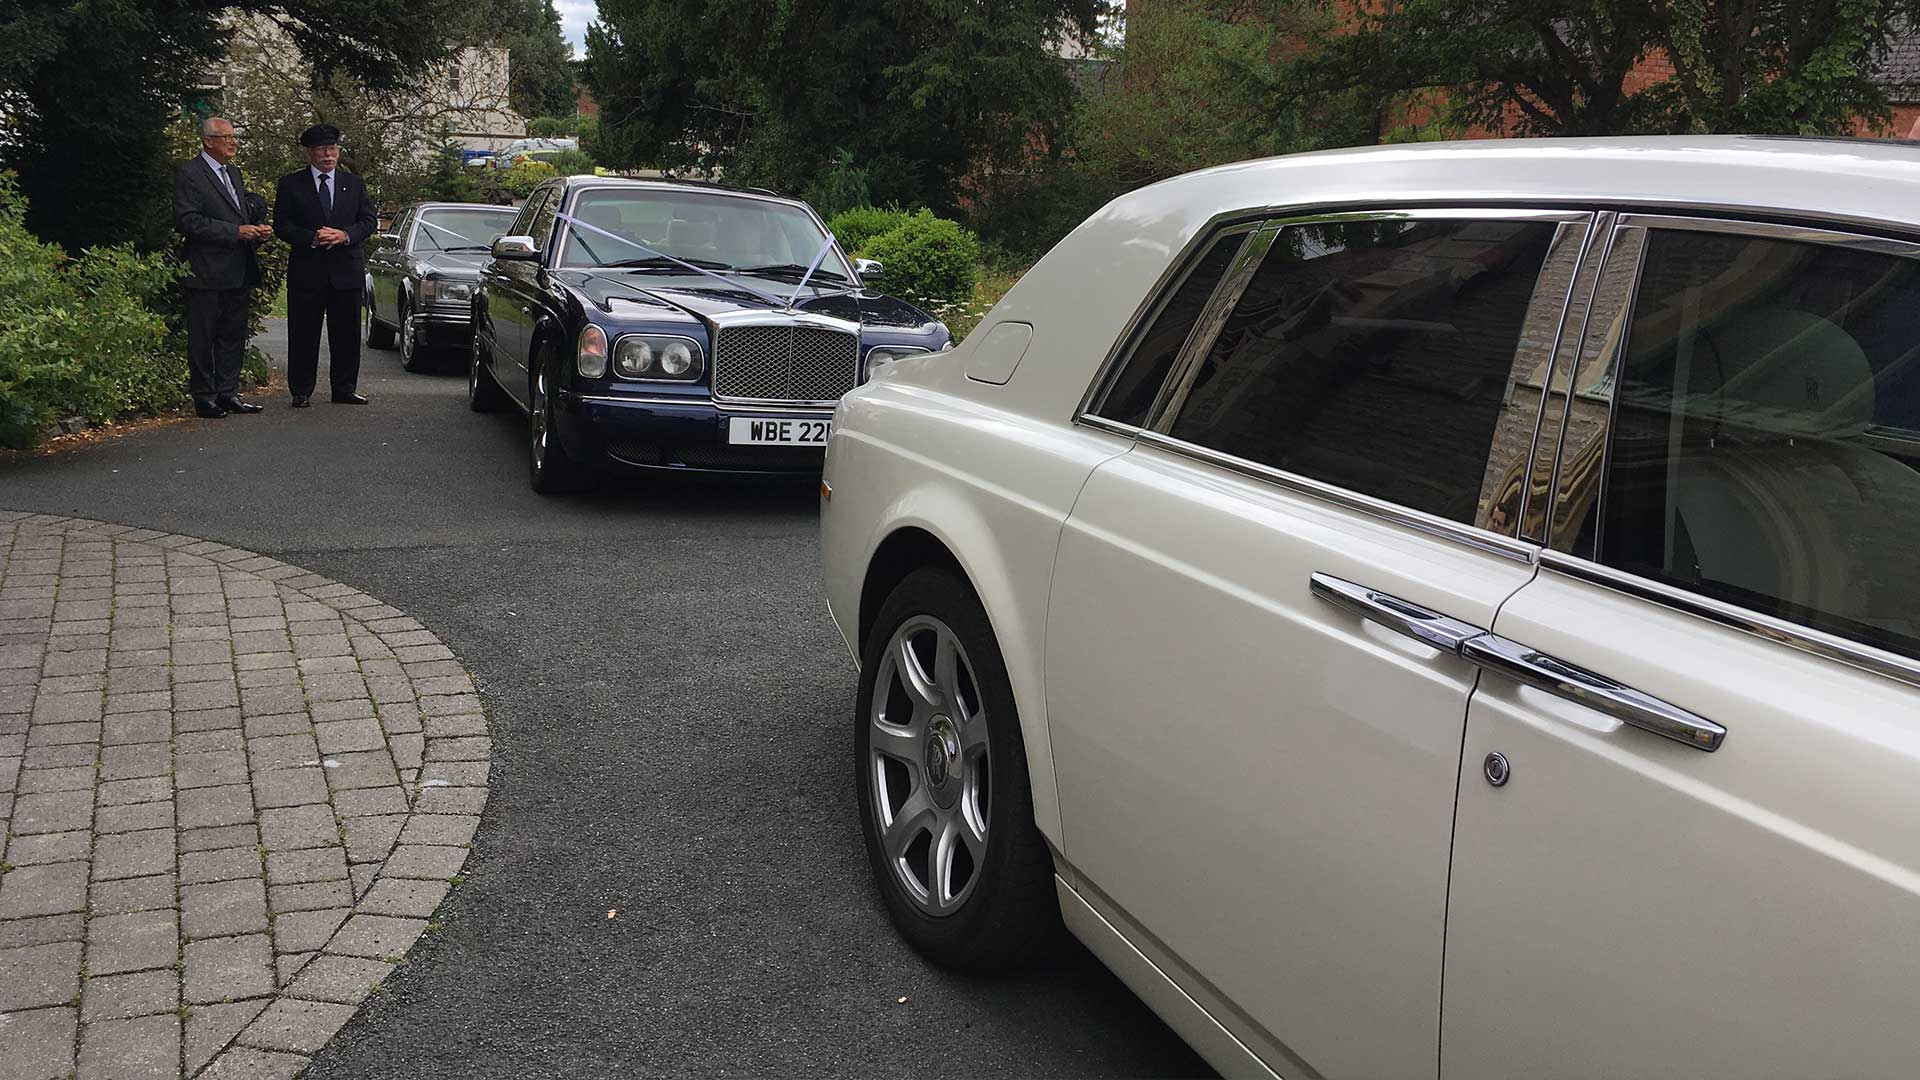 Azure's Wedding Cars arriving in convoy